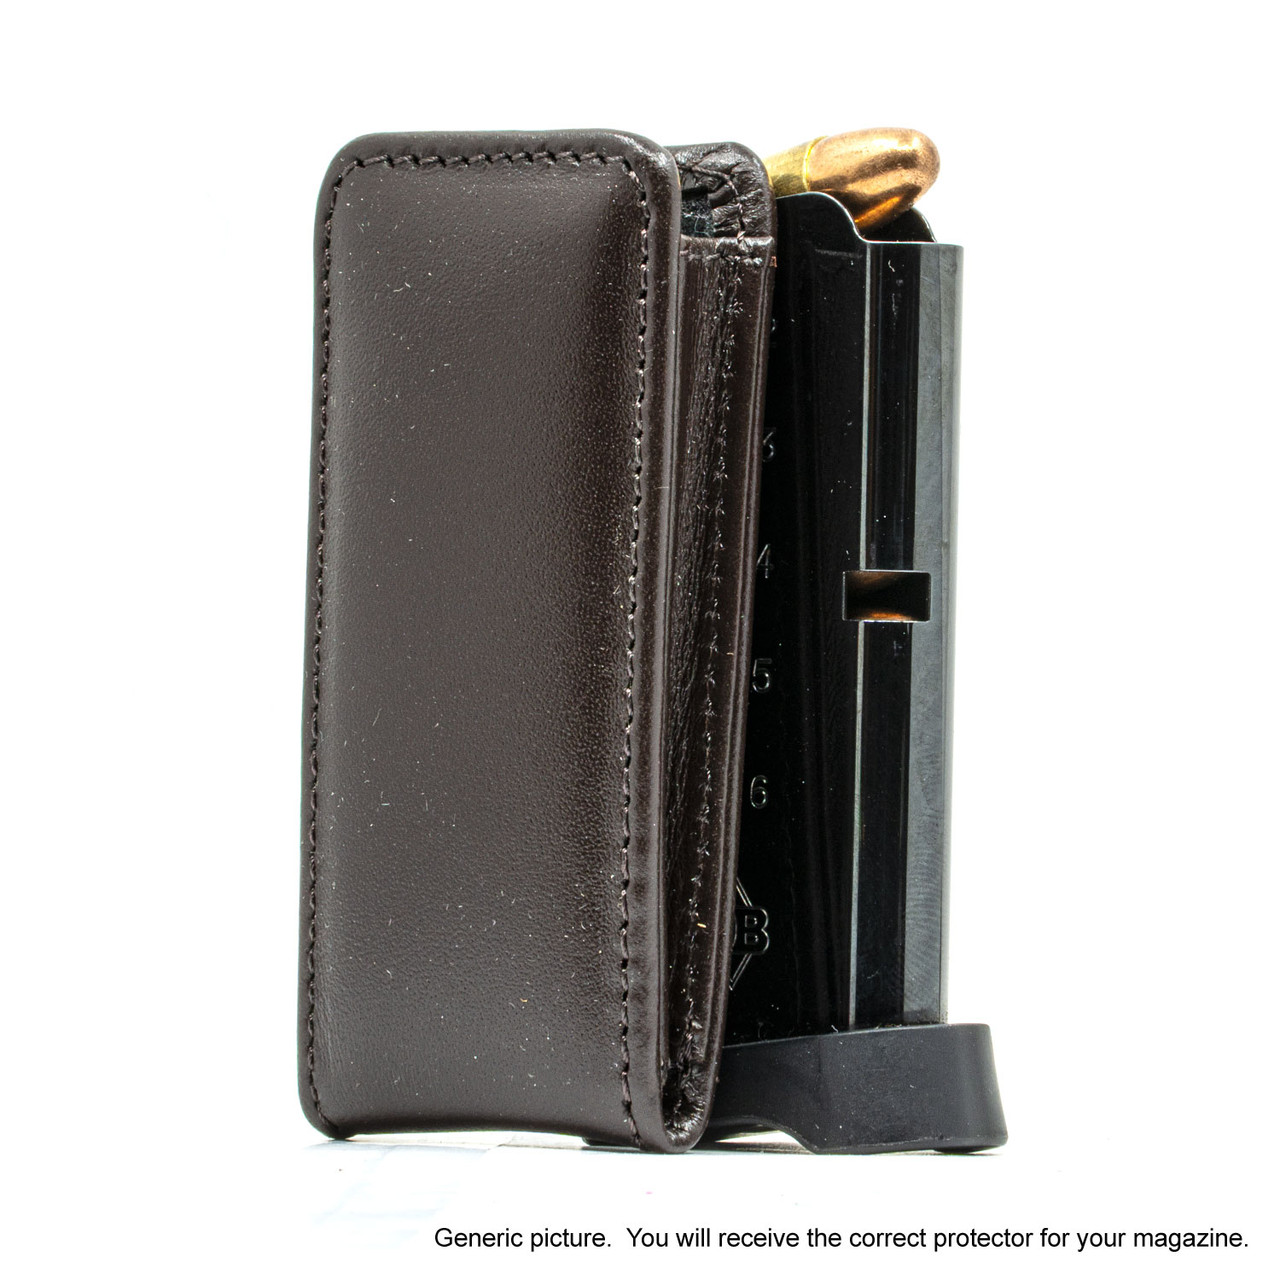 Sig Sauer P239 Brown Leather Magazine Pocket Protector